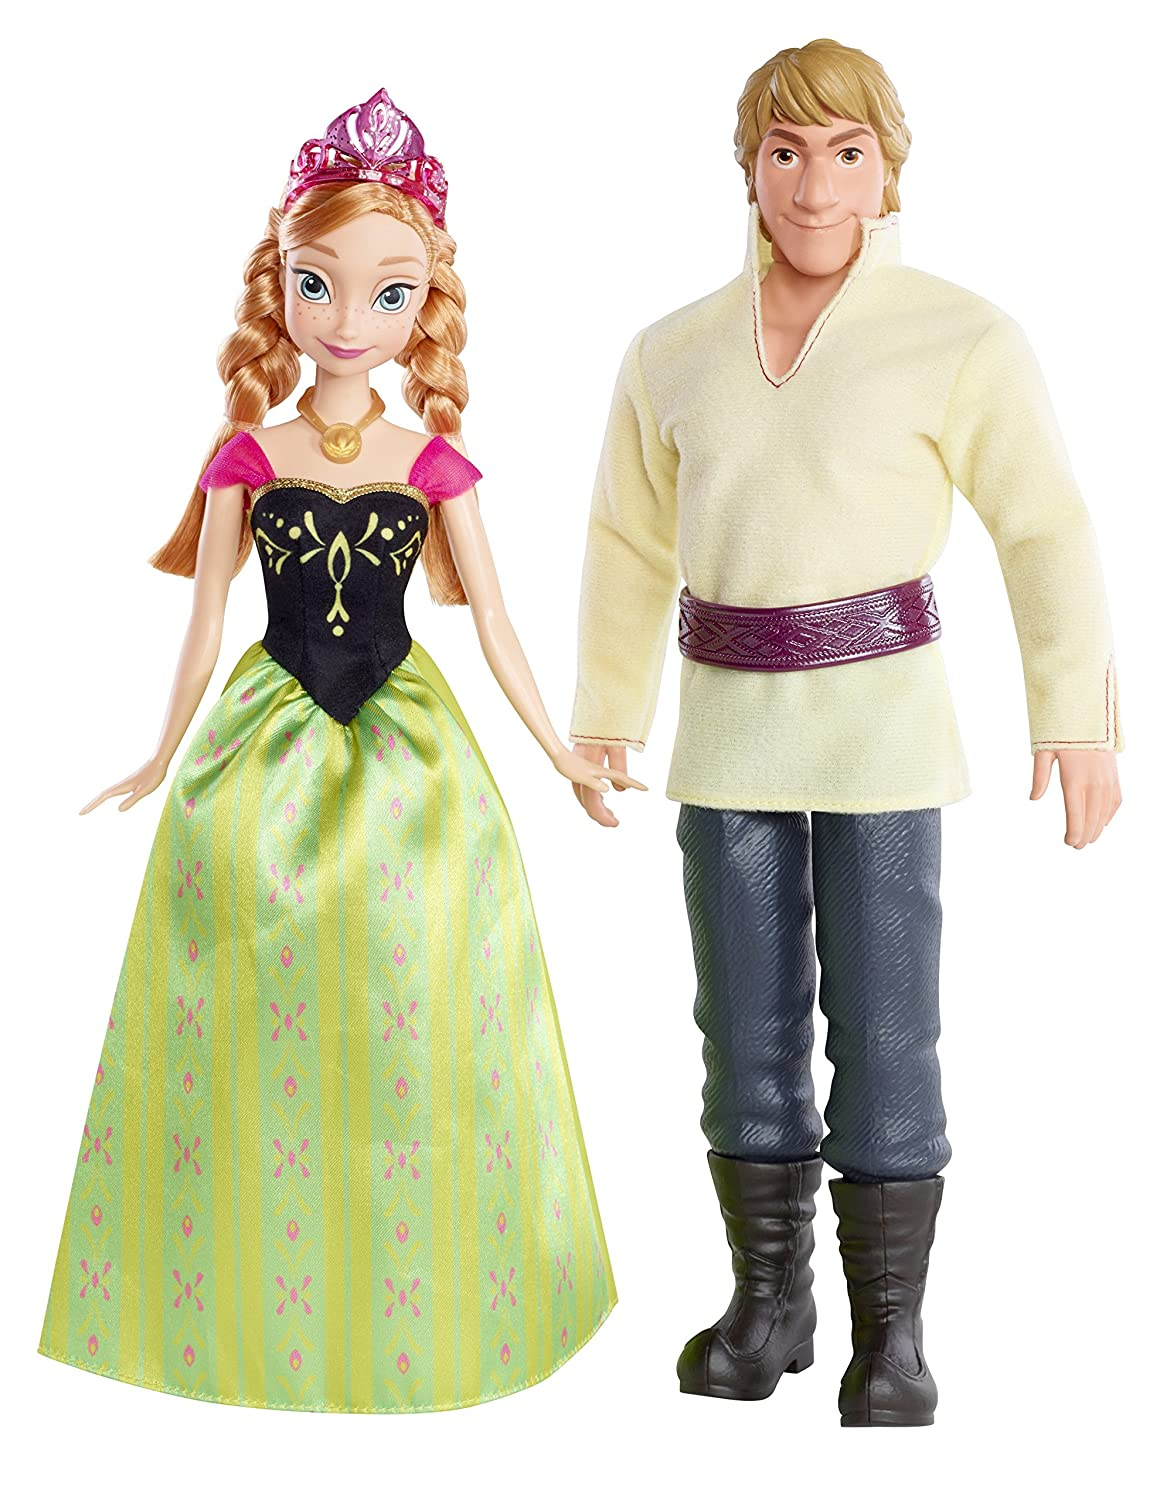 {IN STOCK} Disney Frozen Anna and Kristoff Doll, 2-Pack – $24.97